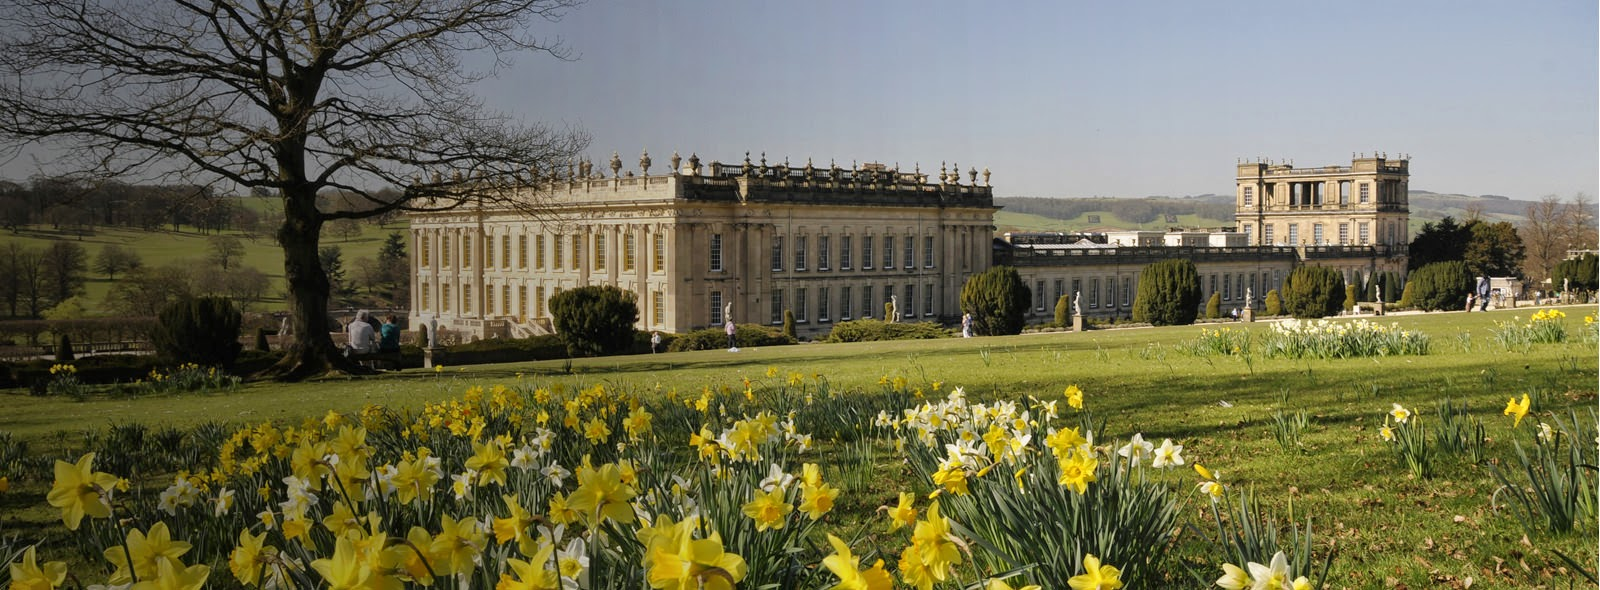 jane austen: chatsworth house pride and prejudice 2005, the